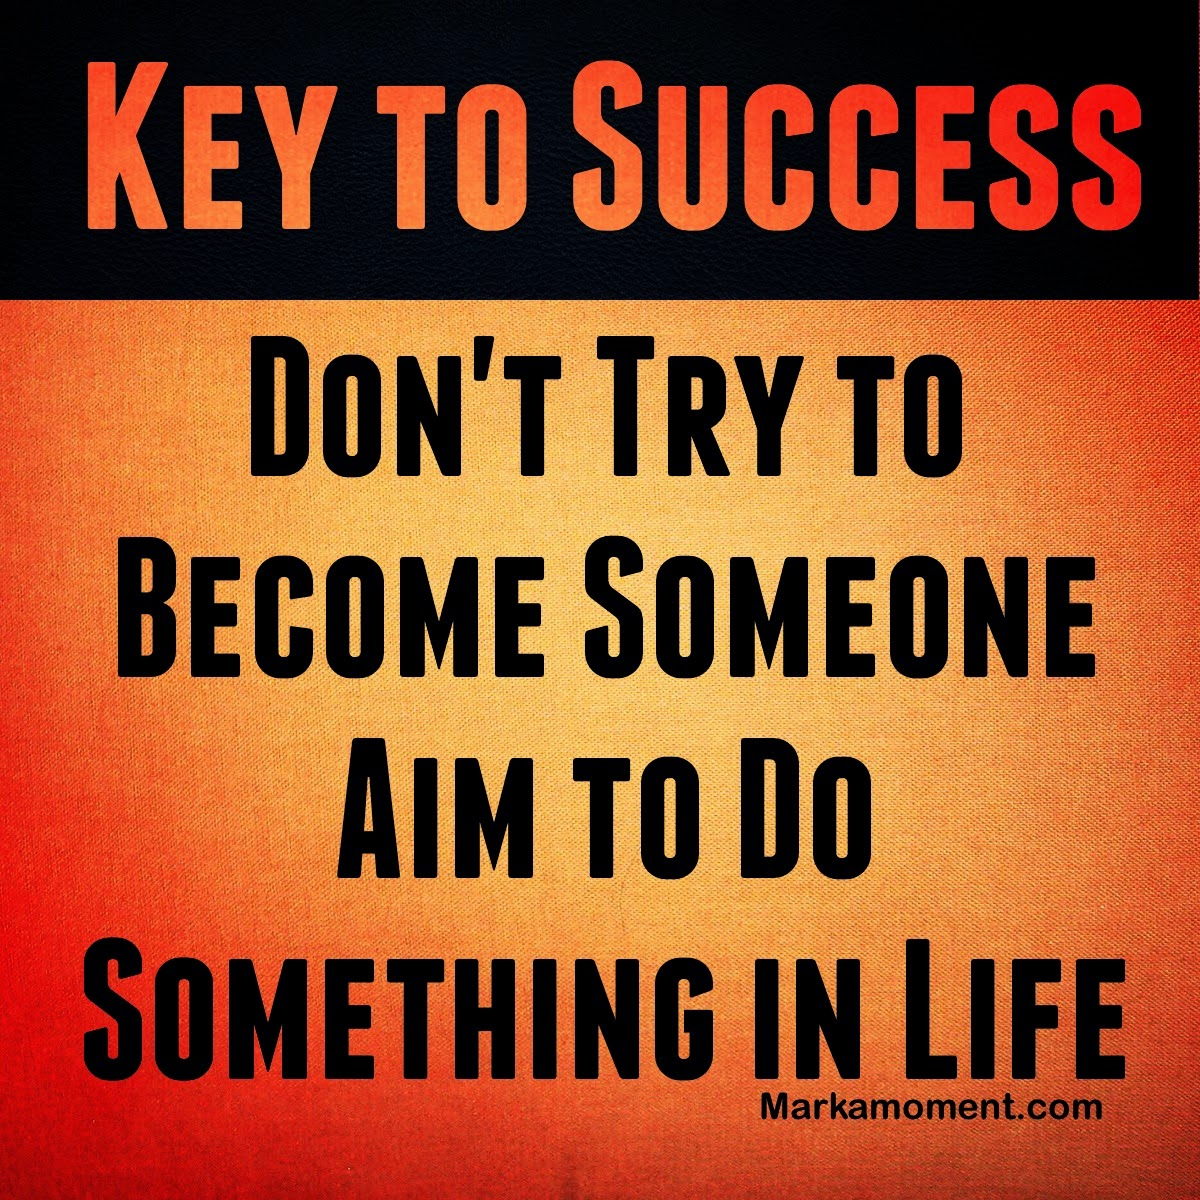 Quotes for Success, Daily Thoughts, Motivational Quotes 2014